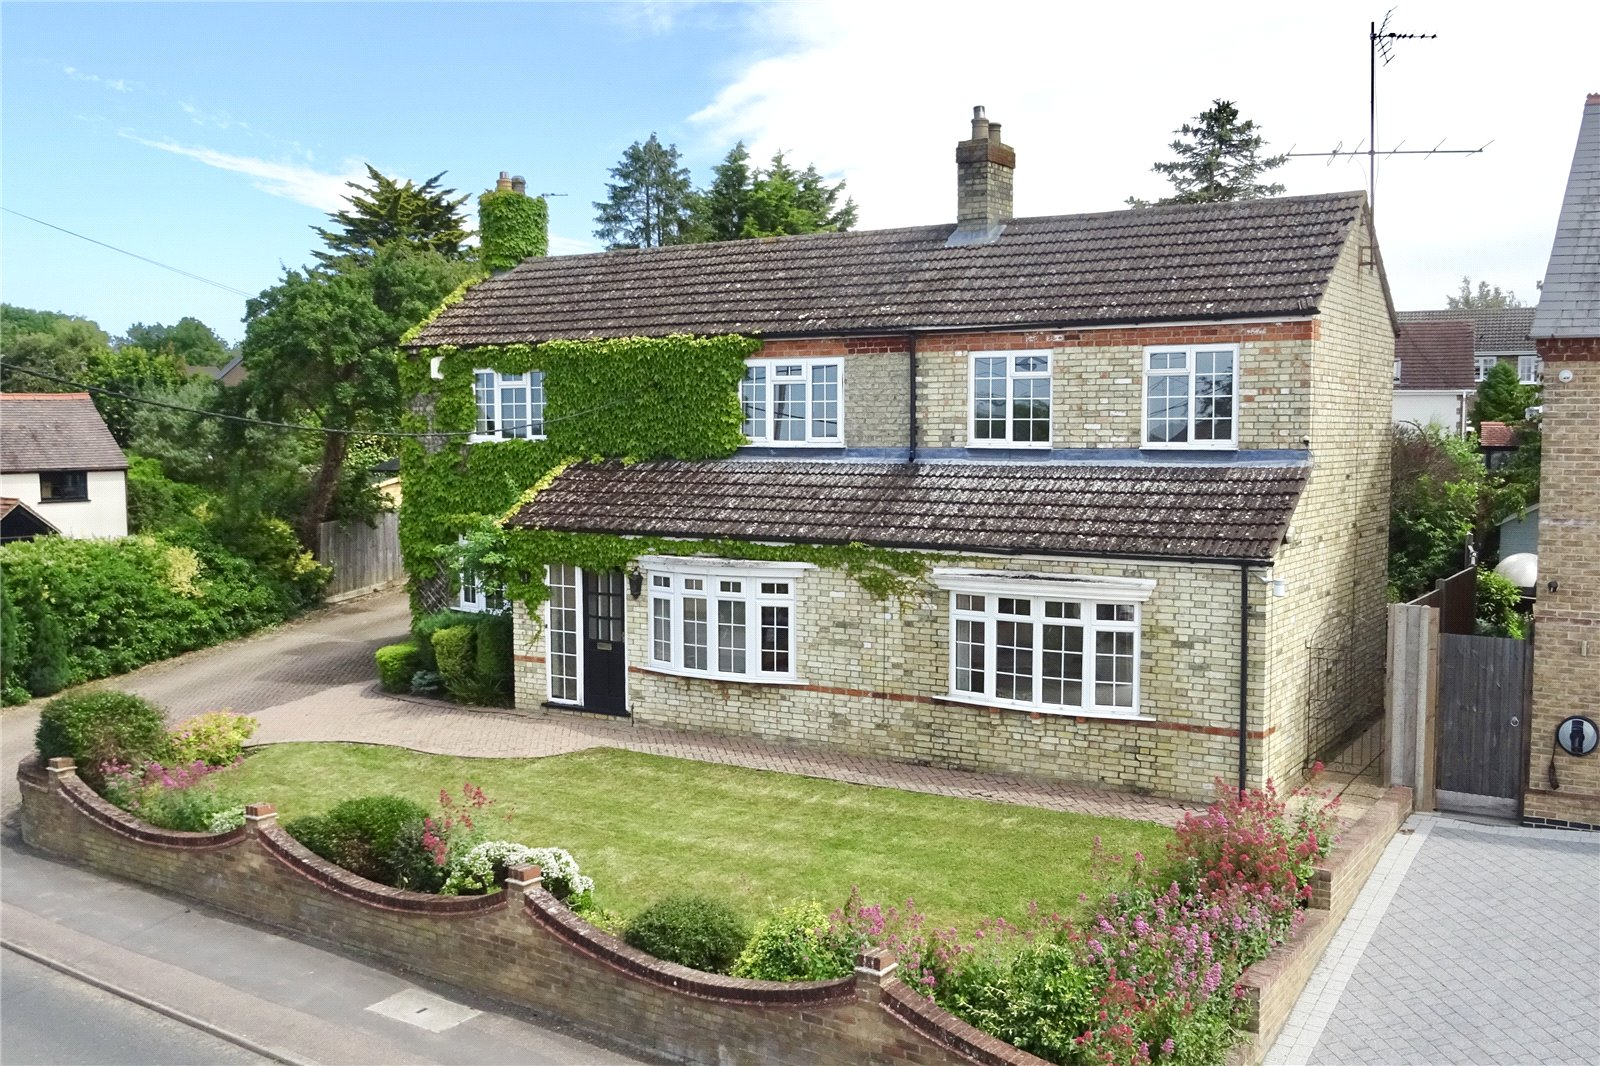 4 bed house for sale in High Street, Great Paxton  - Property Image 1